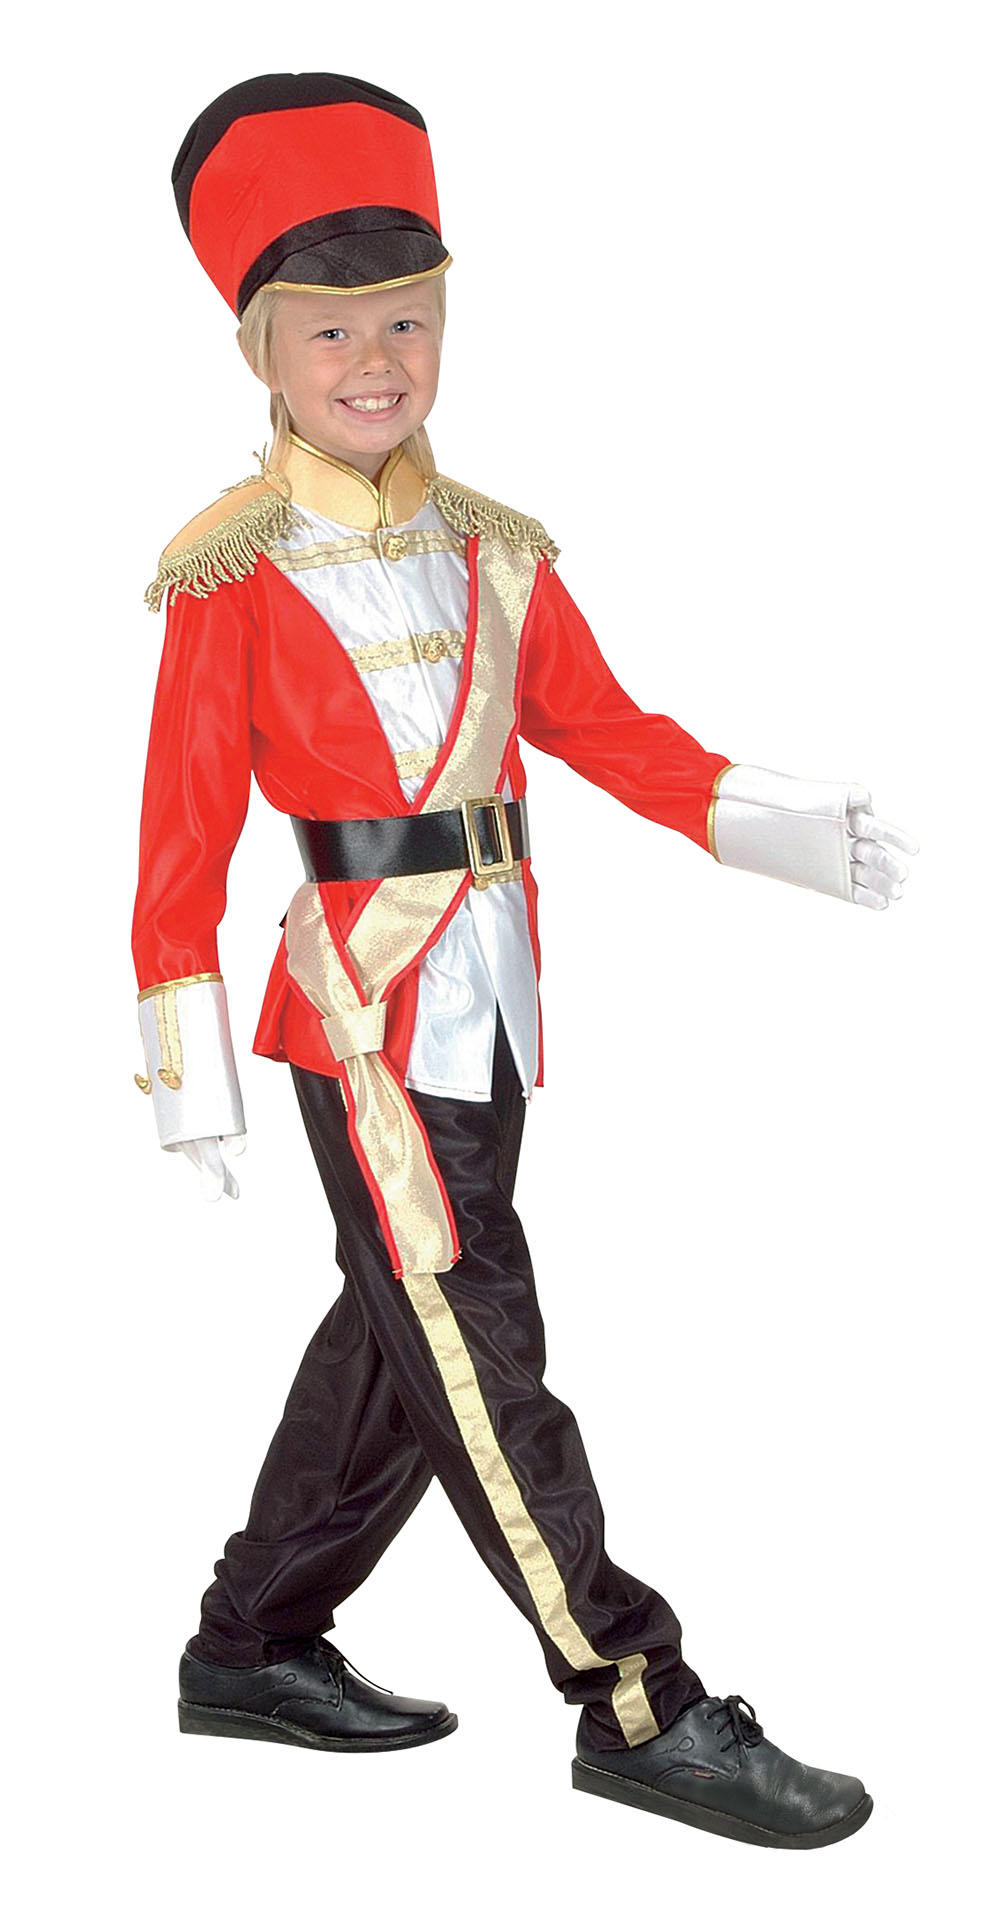 Boyu0027s Toy Soldier Costume  sc 1 st  Mega Fancy Dress & Boyu0027s Toy Soldier Costume | Kids Christmas Costumes | Mega Fancy Dress